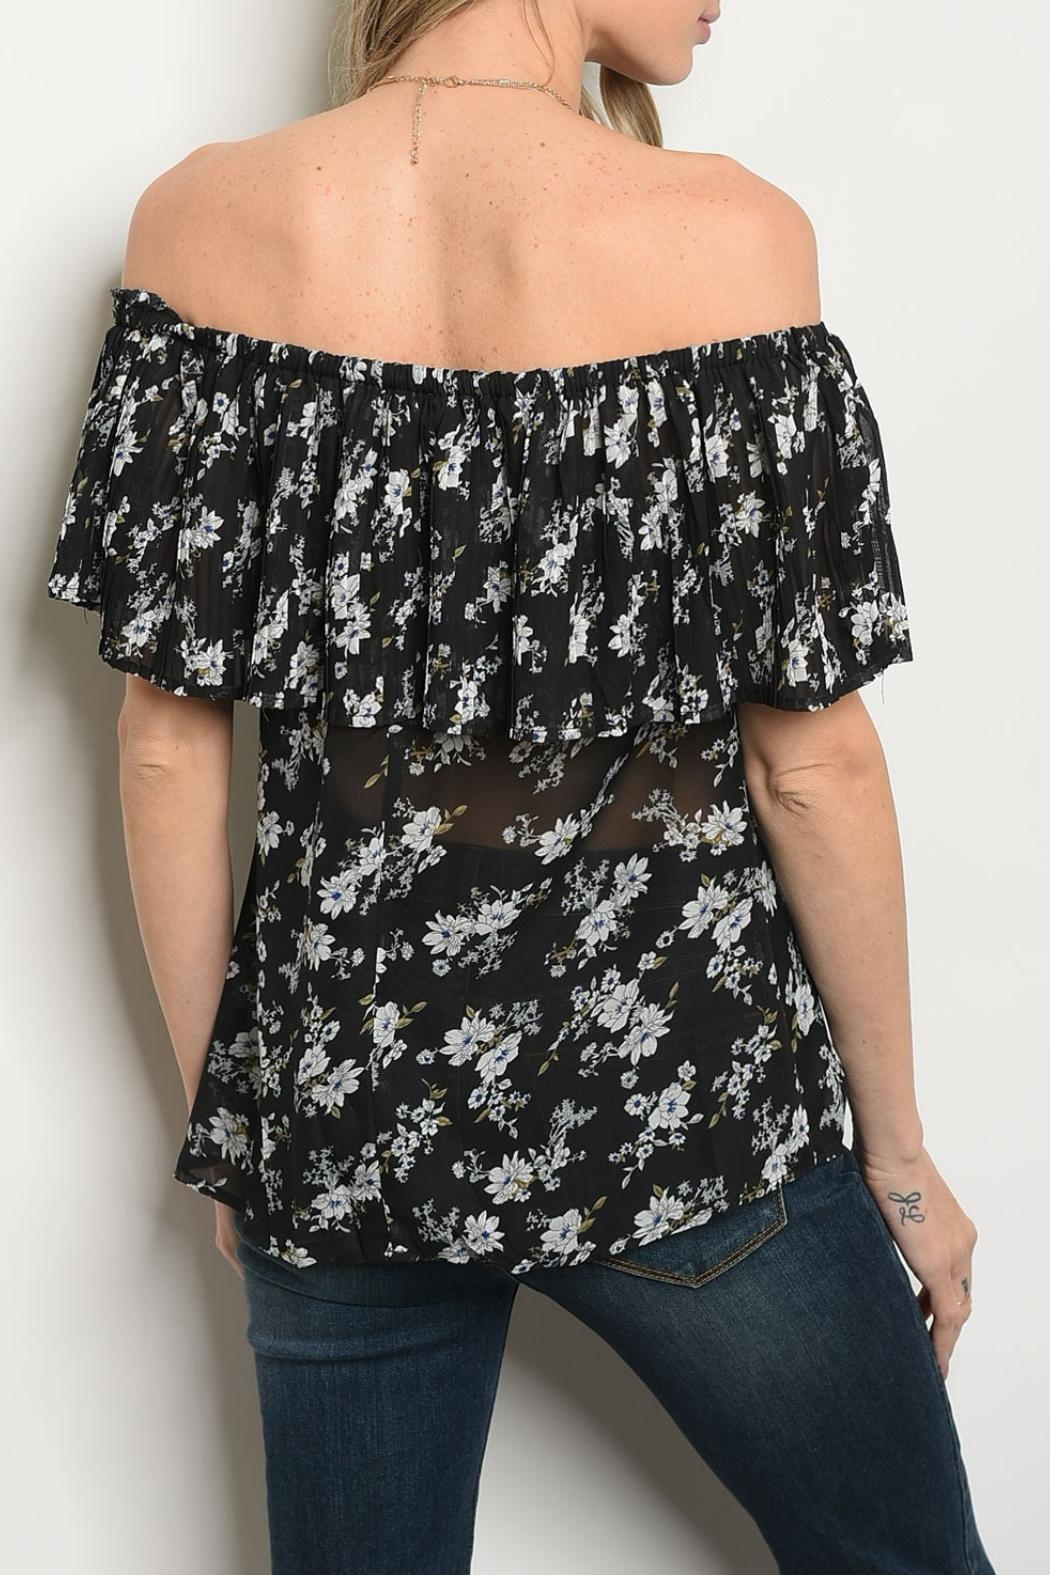 Alythea Black Floral Blouse - Front Full Image